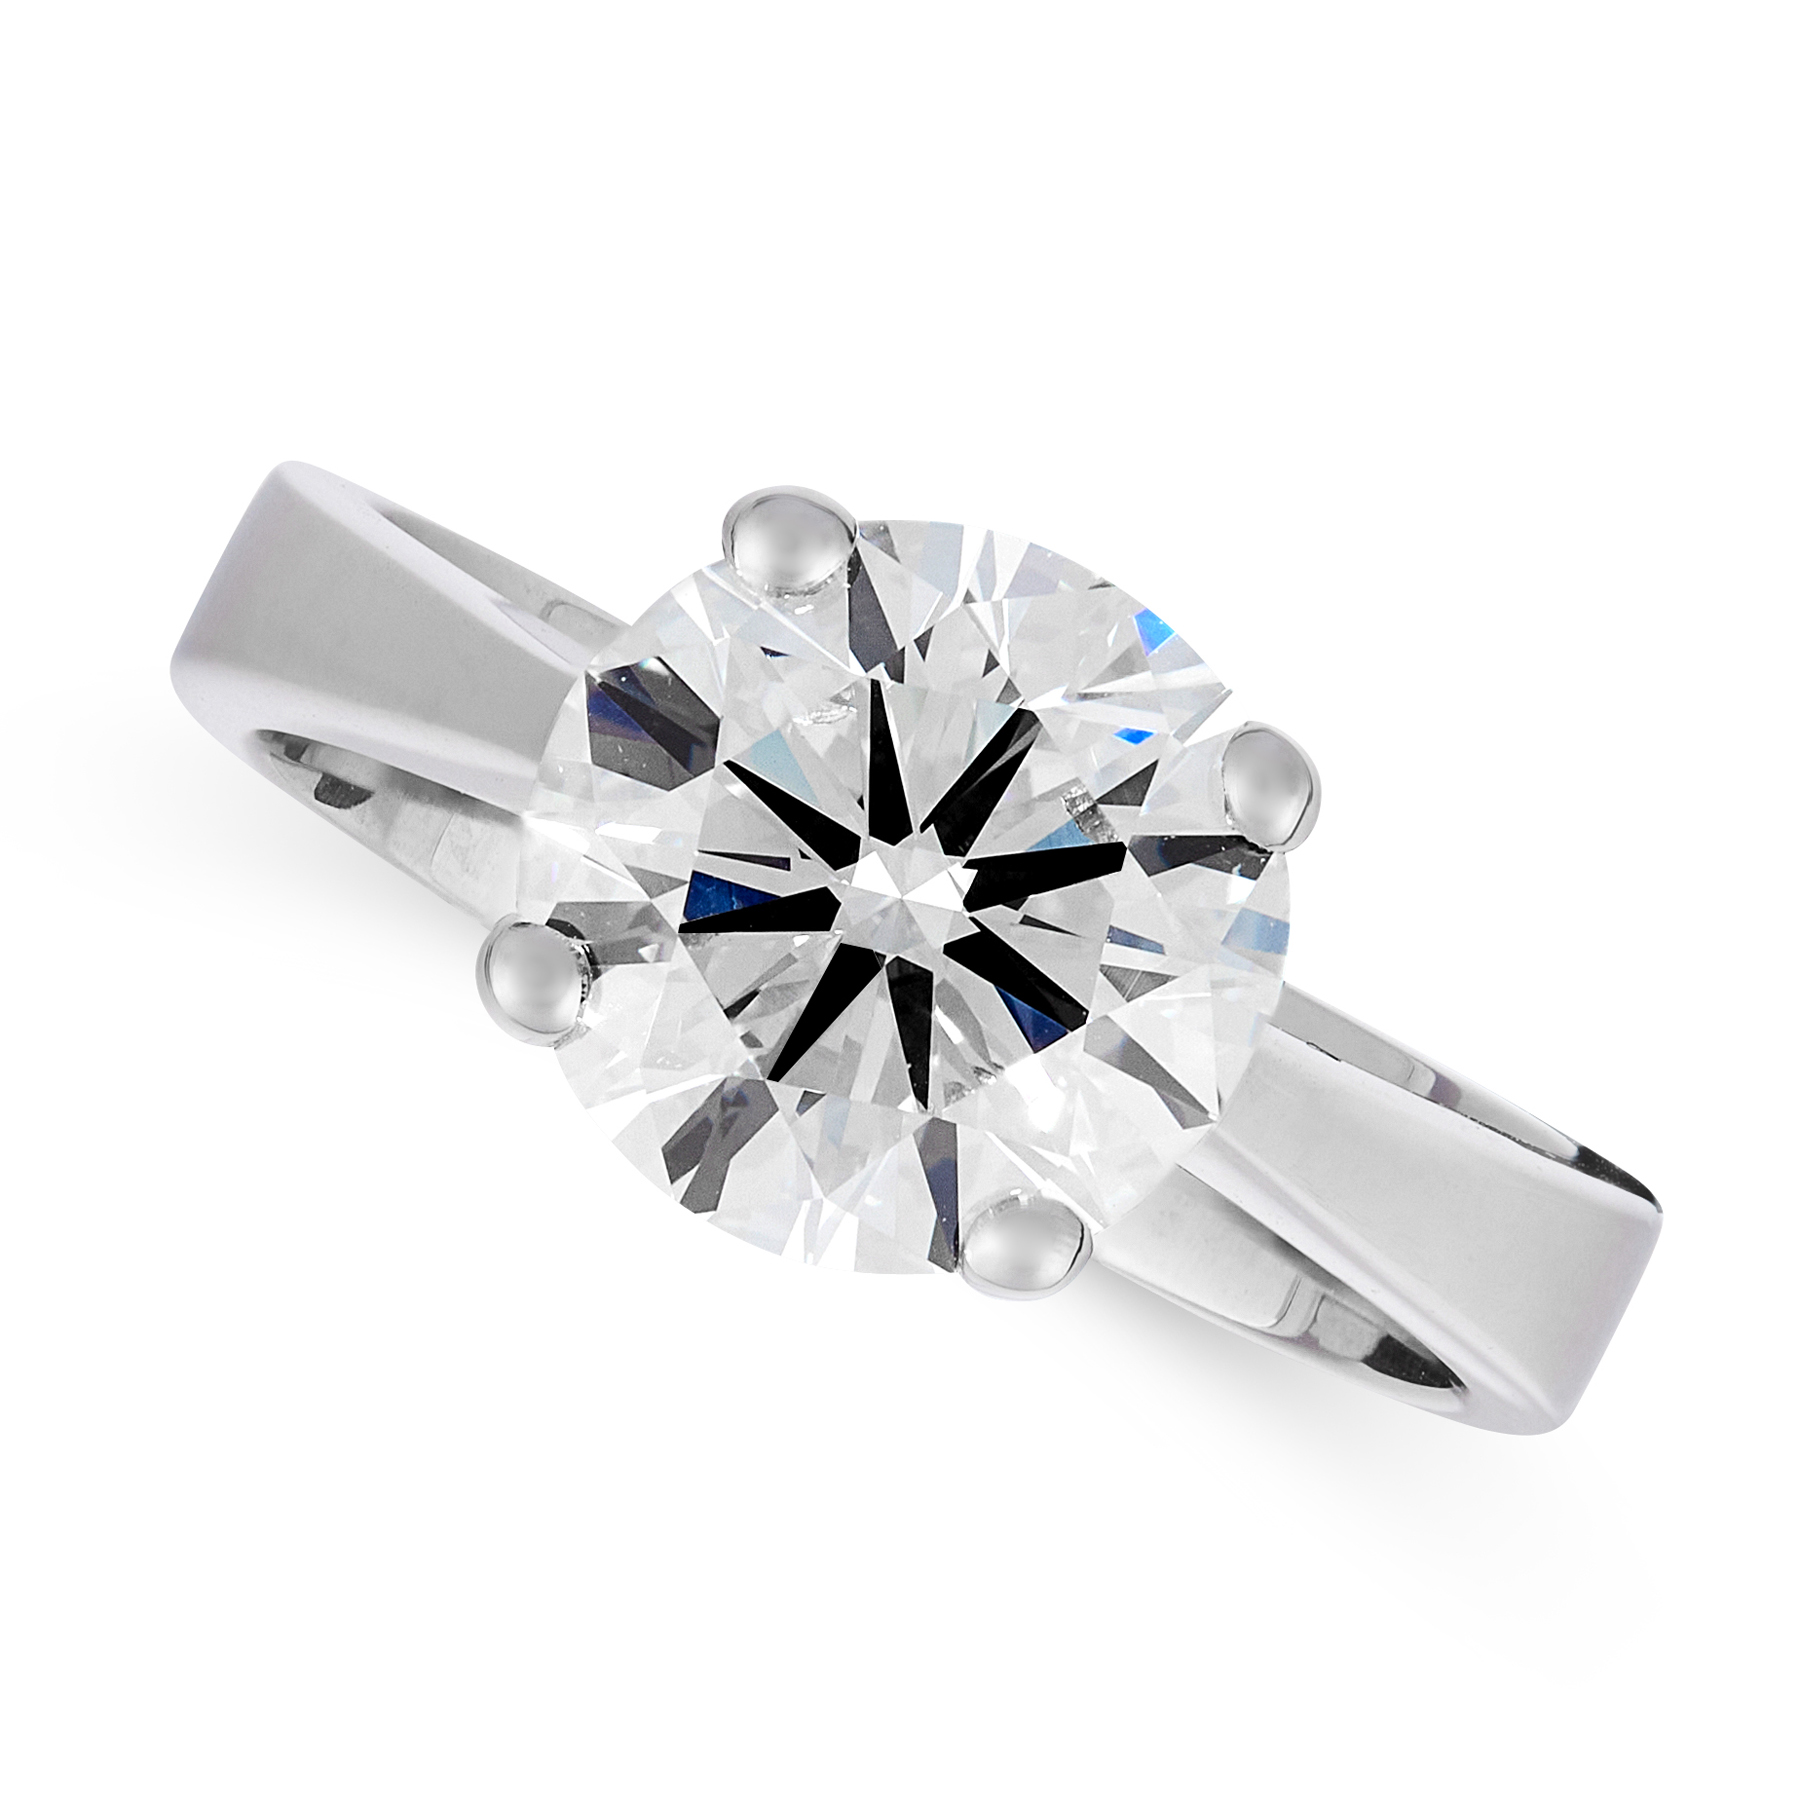 A 3.00 CARAT SOLITAIRE DIAMOND RING in 18ct white gold, set with a round brilliant cut diamond of